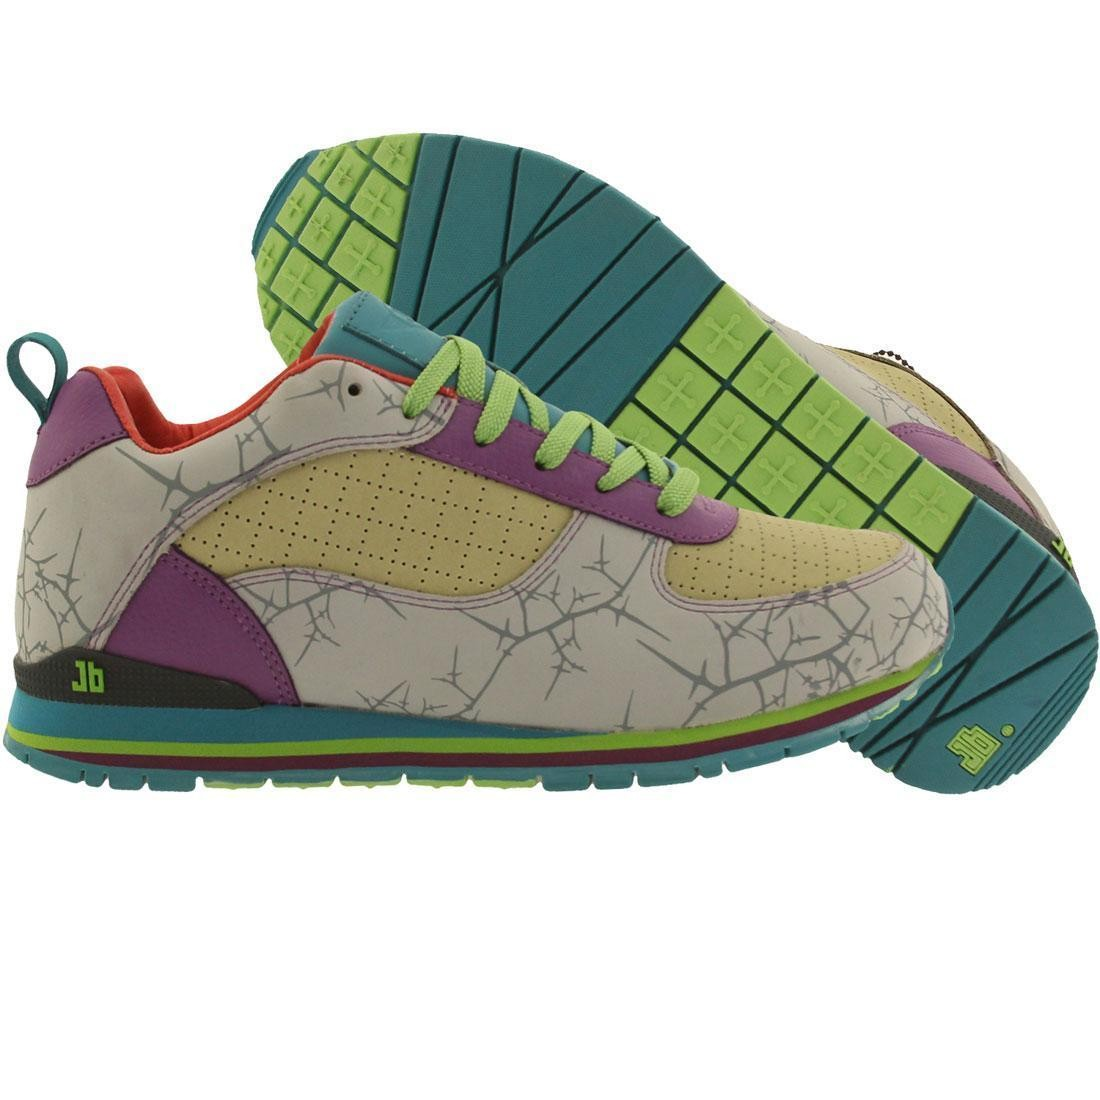 カーキ スニーカー メンズ 【 Jb Classics Sub-40 Thorns - Otwah (cement / Khaki / Purple) 】 Cement / Khaki / Purple